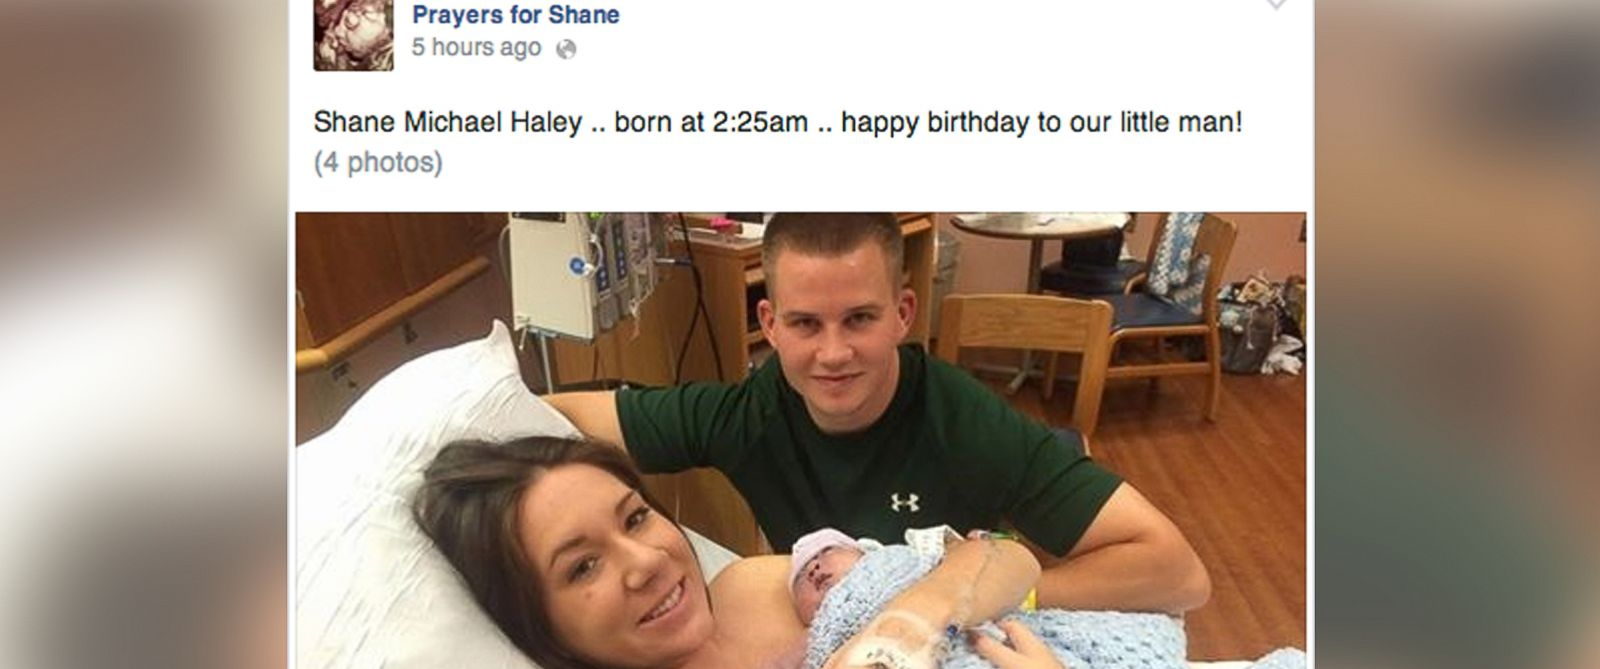 "PHOTO: Jenna and Dan Haley posted this photo of their newborn, Shane Haley, to their ""Prayers for Shane"" Facebook page, Oct. 9, 2014."